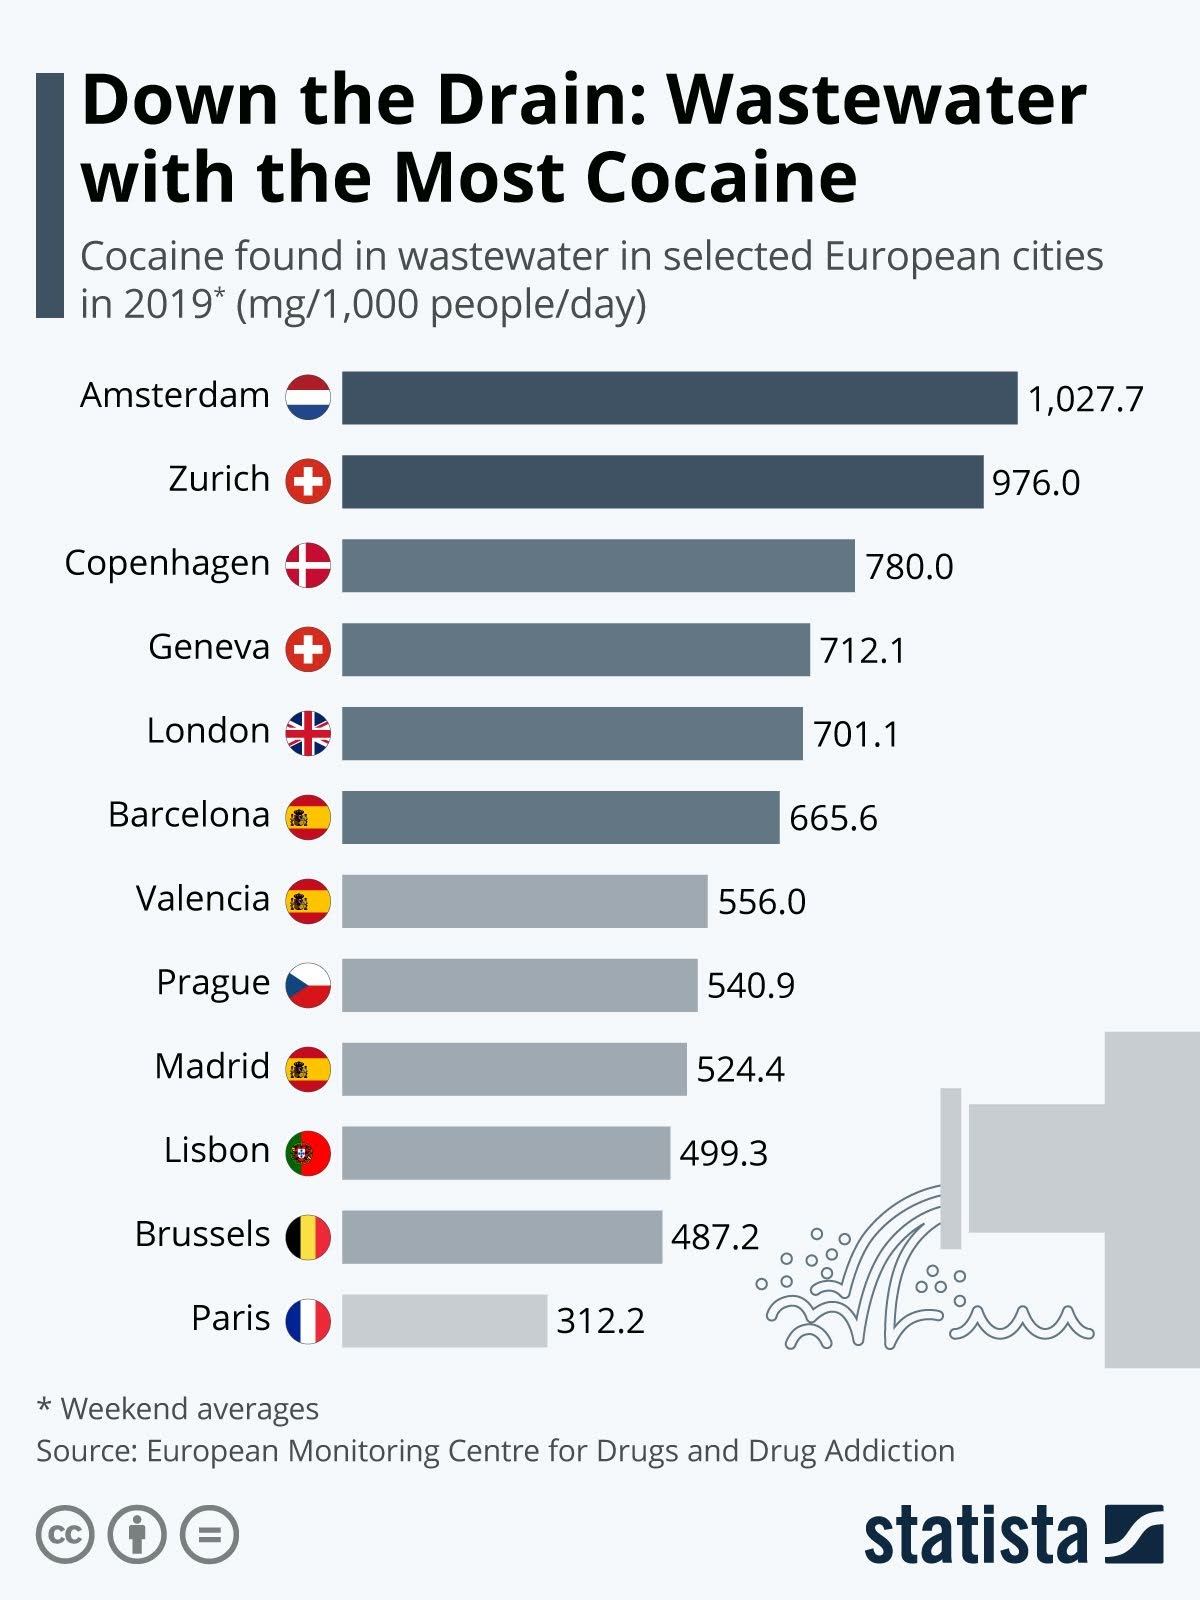 down-the-drain-wastewater-with-the-most-cocaine-infographic